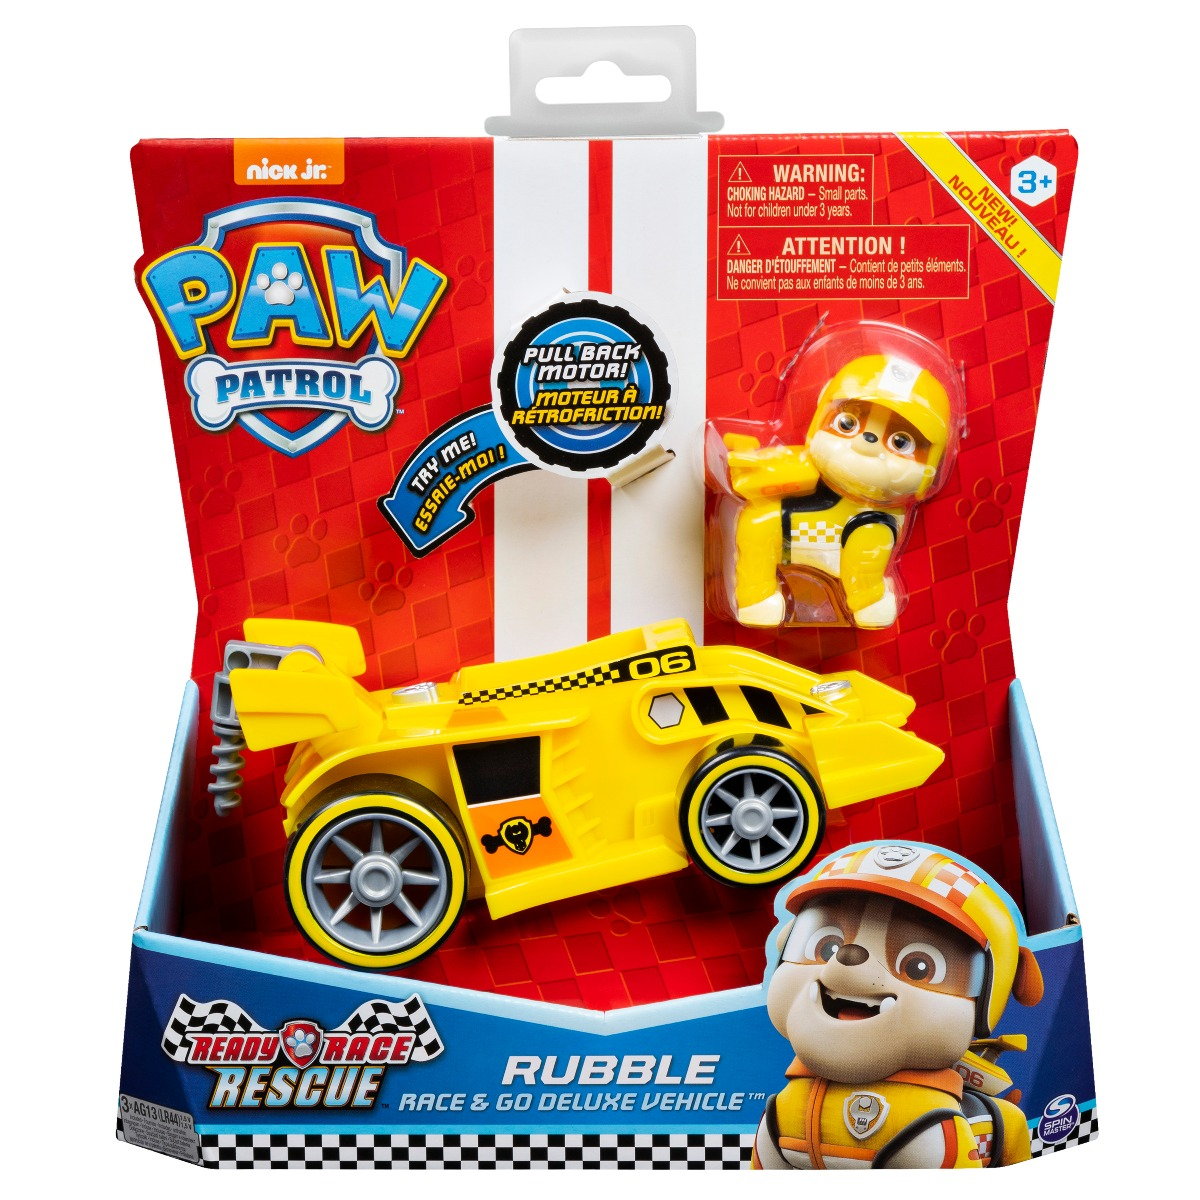 Masinuta cu figurina Paw Patrol Ready Race, Rubble 20119529